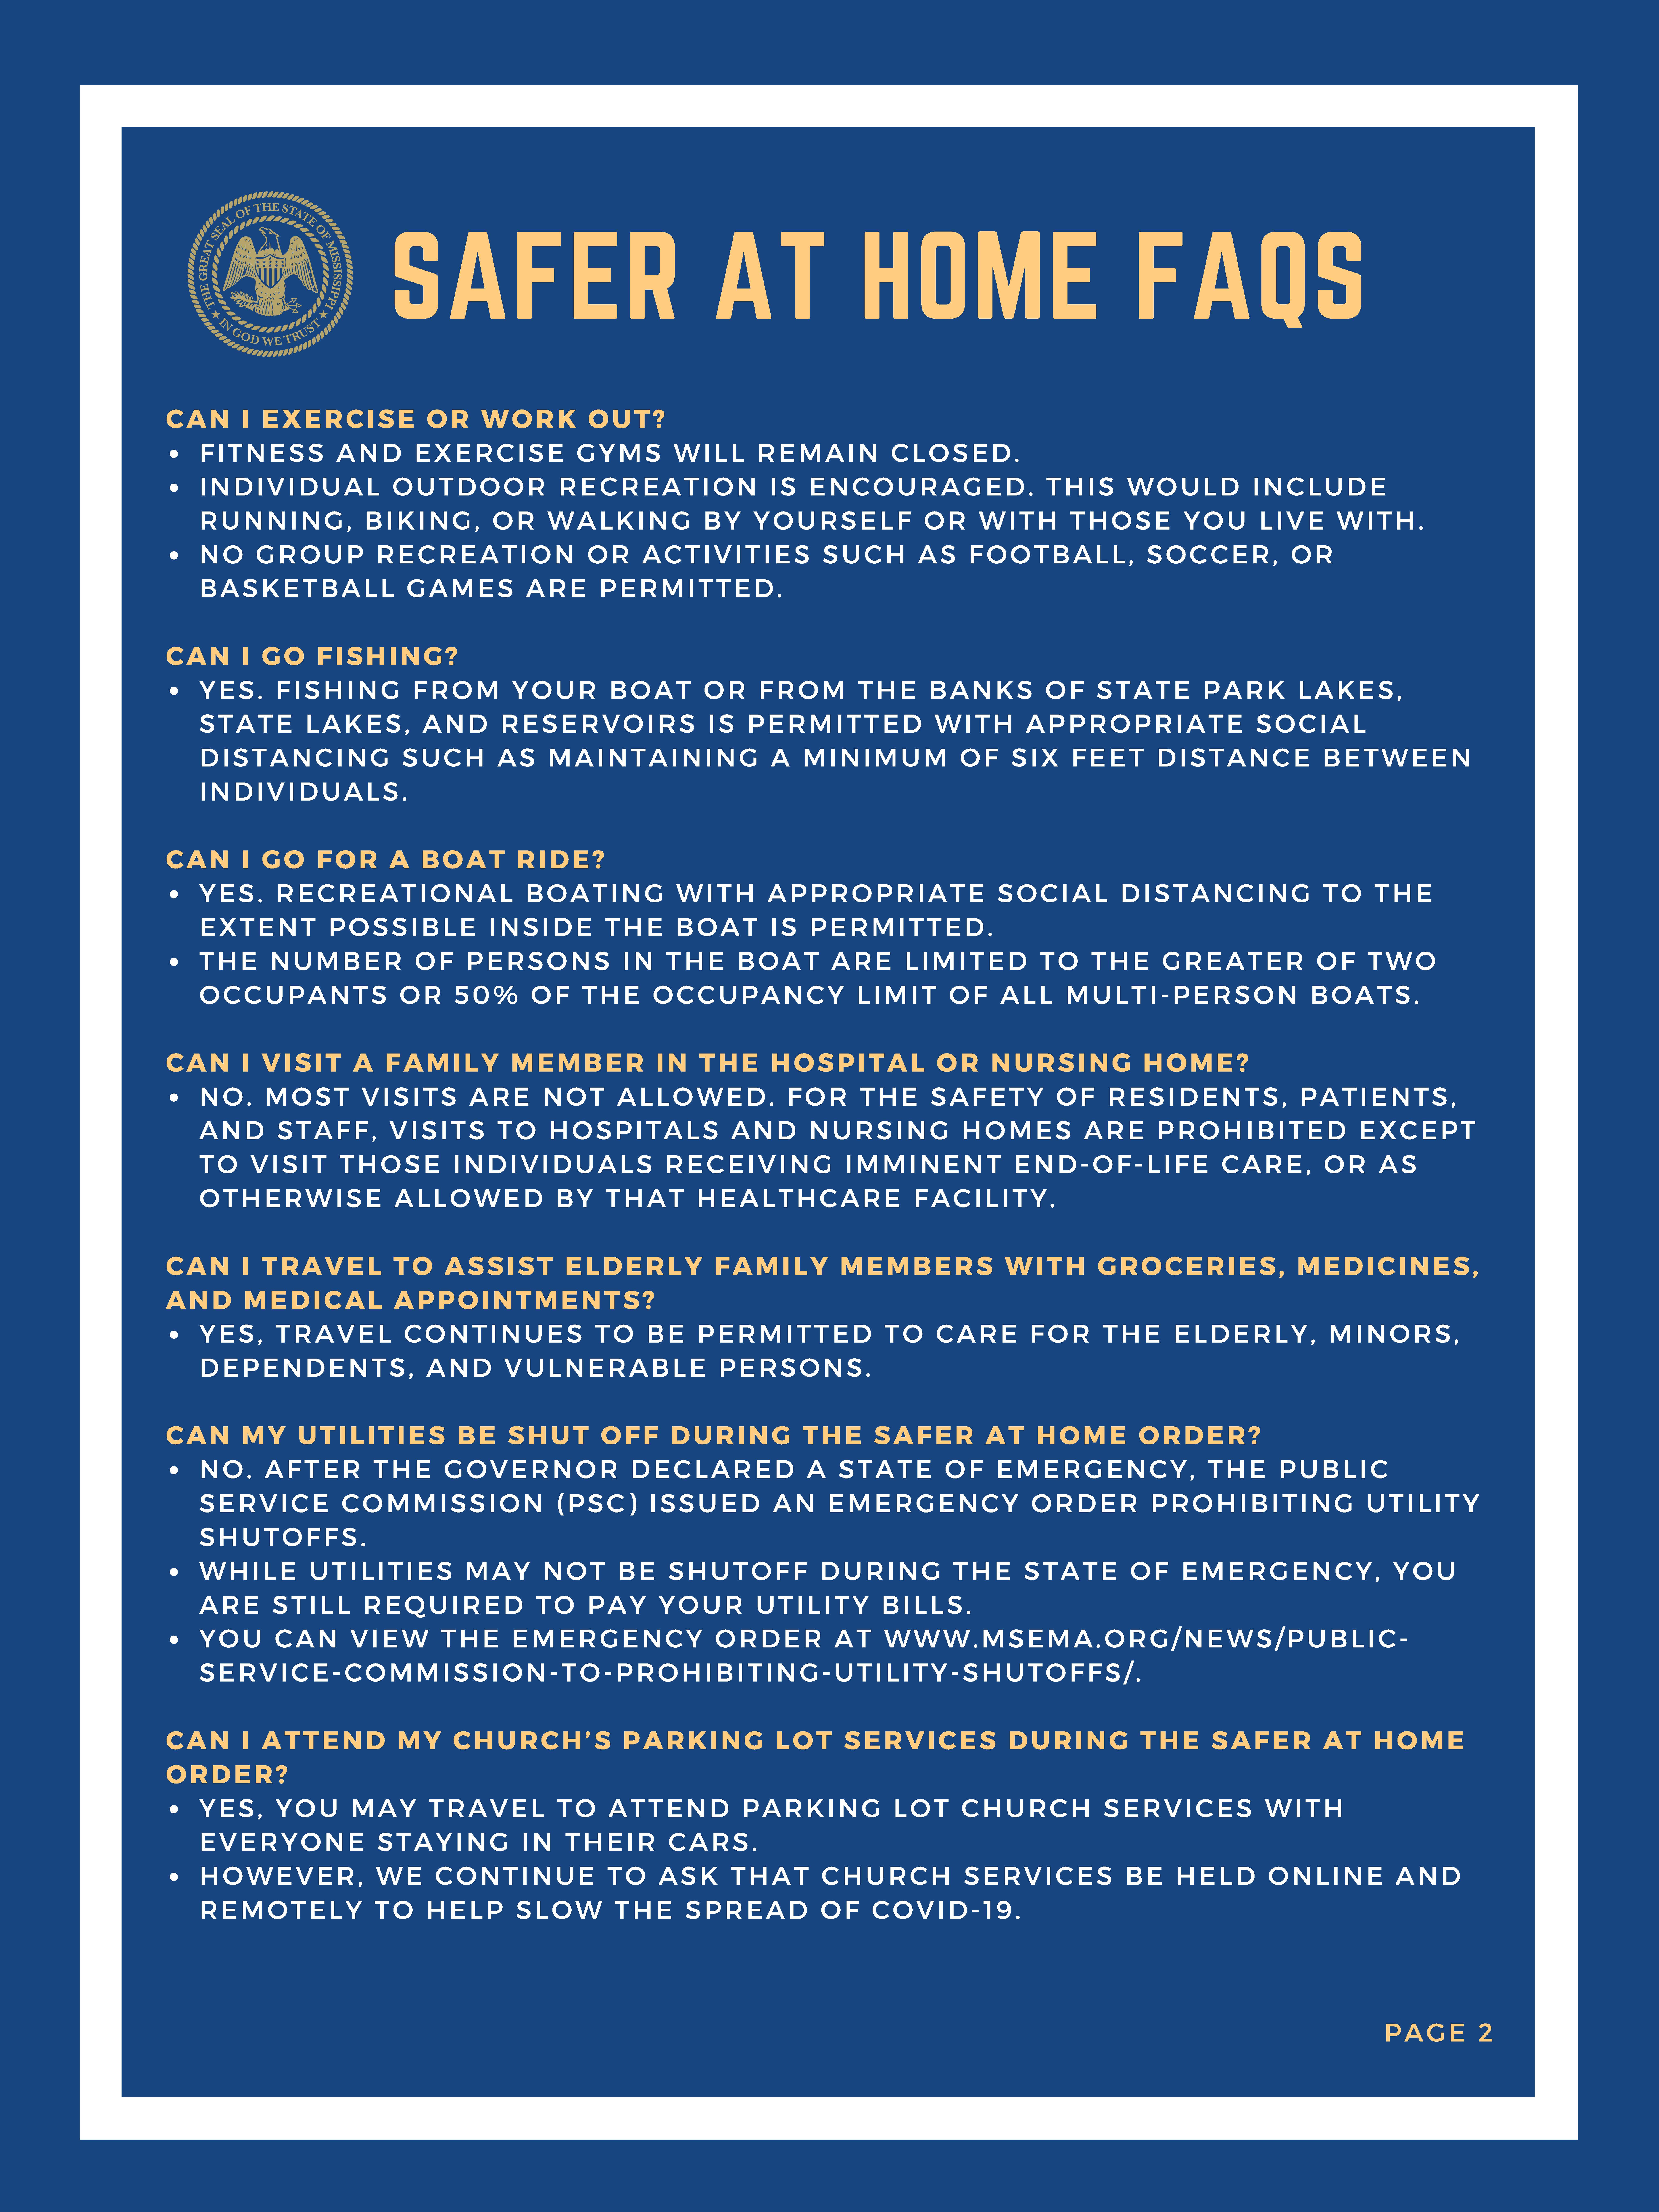 Safer at Home FAQs_Page_2.jpg